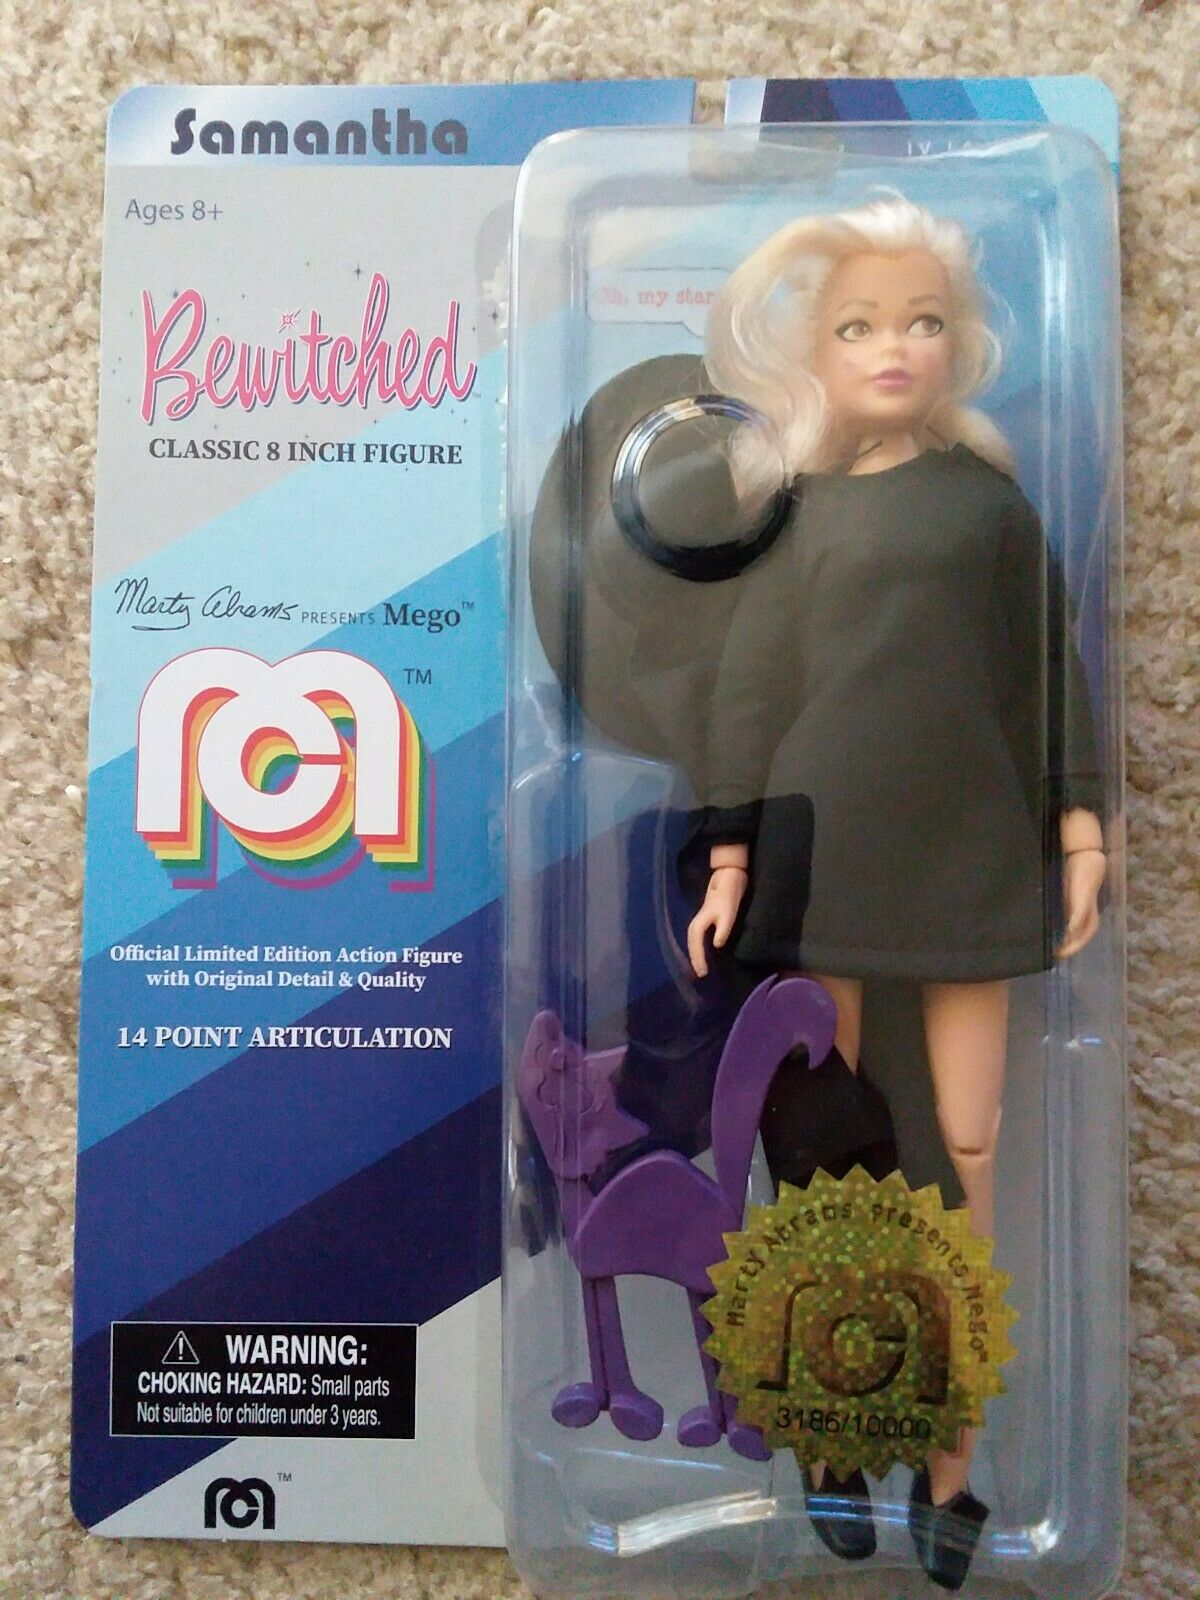 """2018 MEGO Sauomotha Bewitched Ltd 10,000  Target azione cifra bambola 8"""" with smudge  vanno a ruba"""